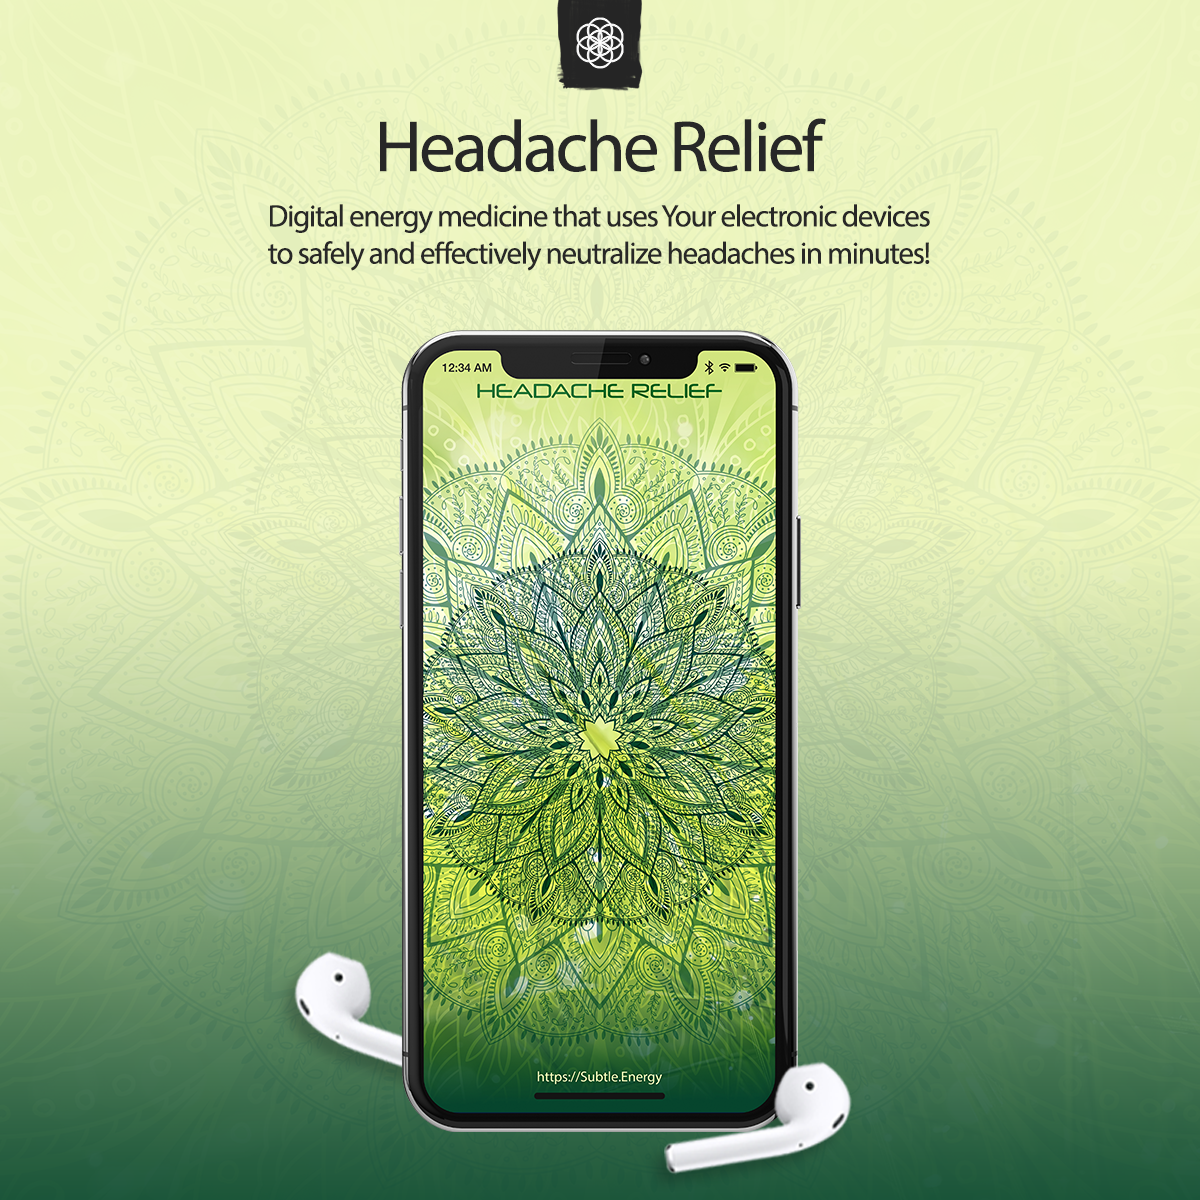 Headache Relief Subtle Energy